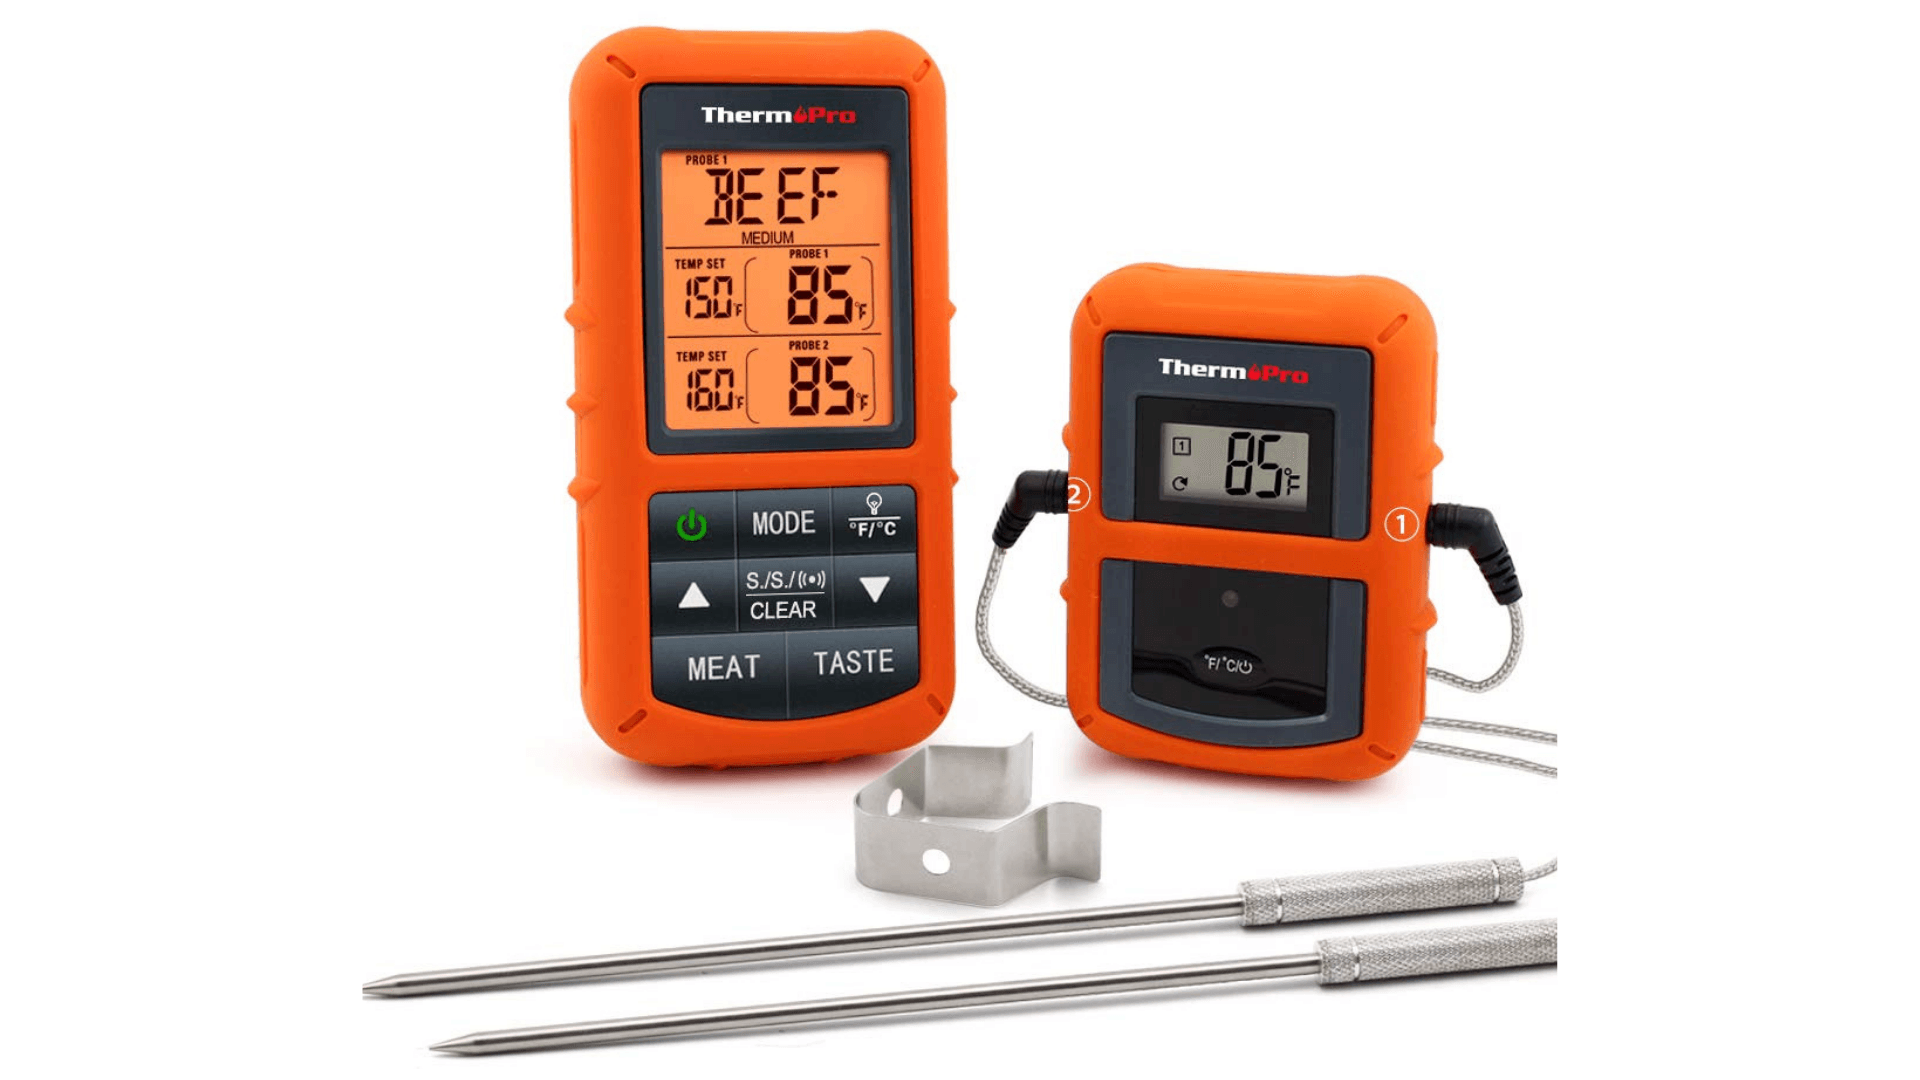 Product Image of ThermoPro TP20 Wireless Remote Digital Thermometer